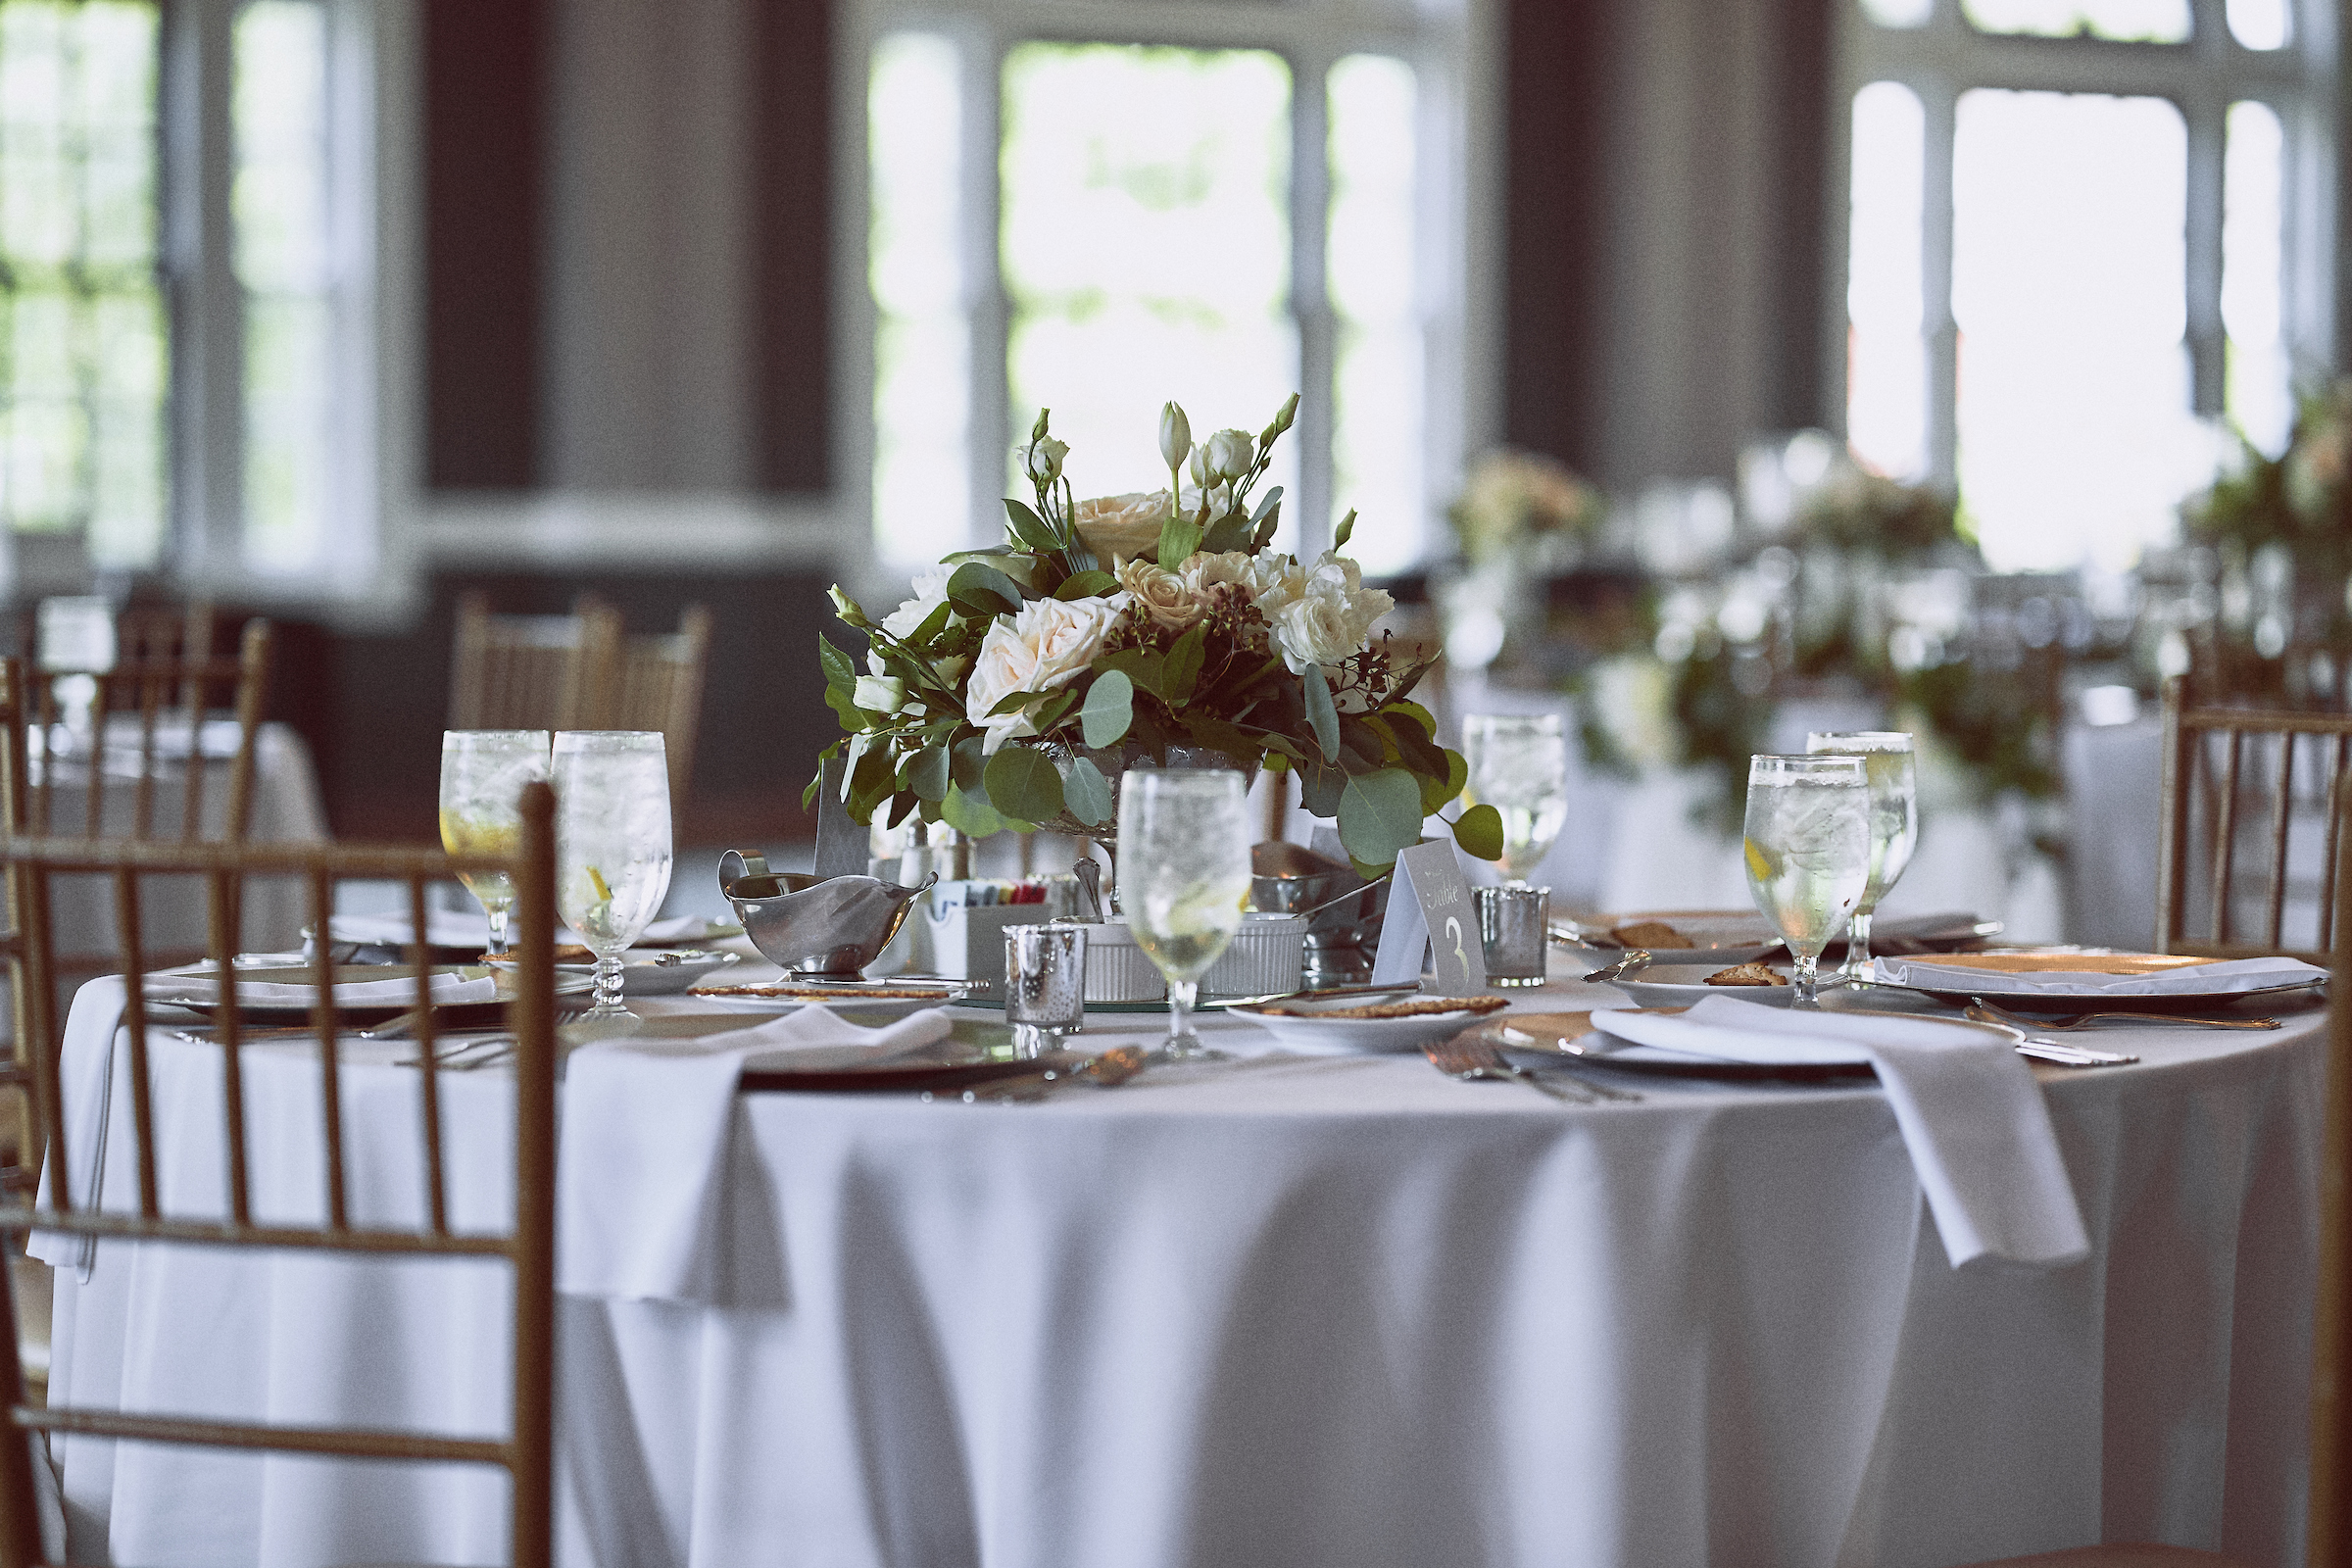 Planning an event? -